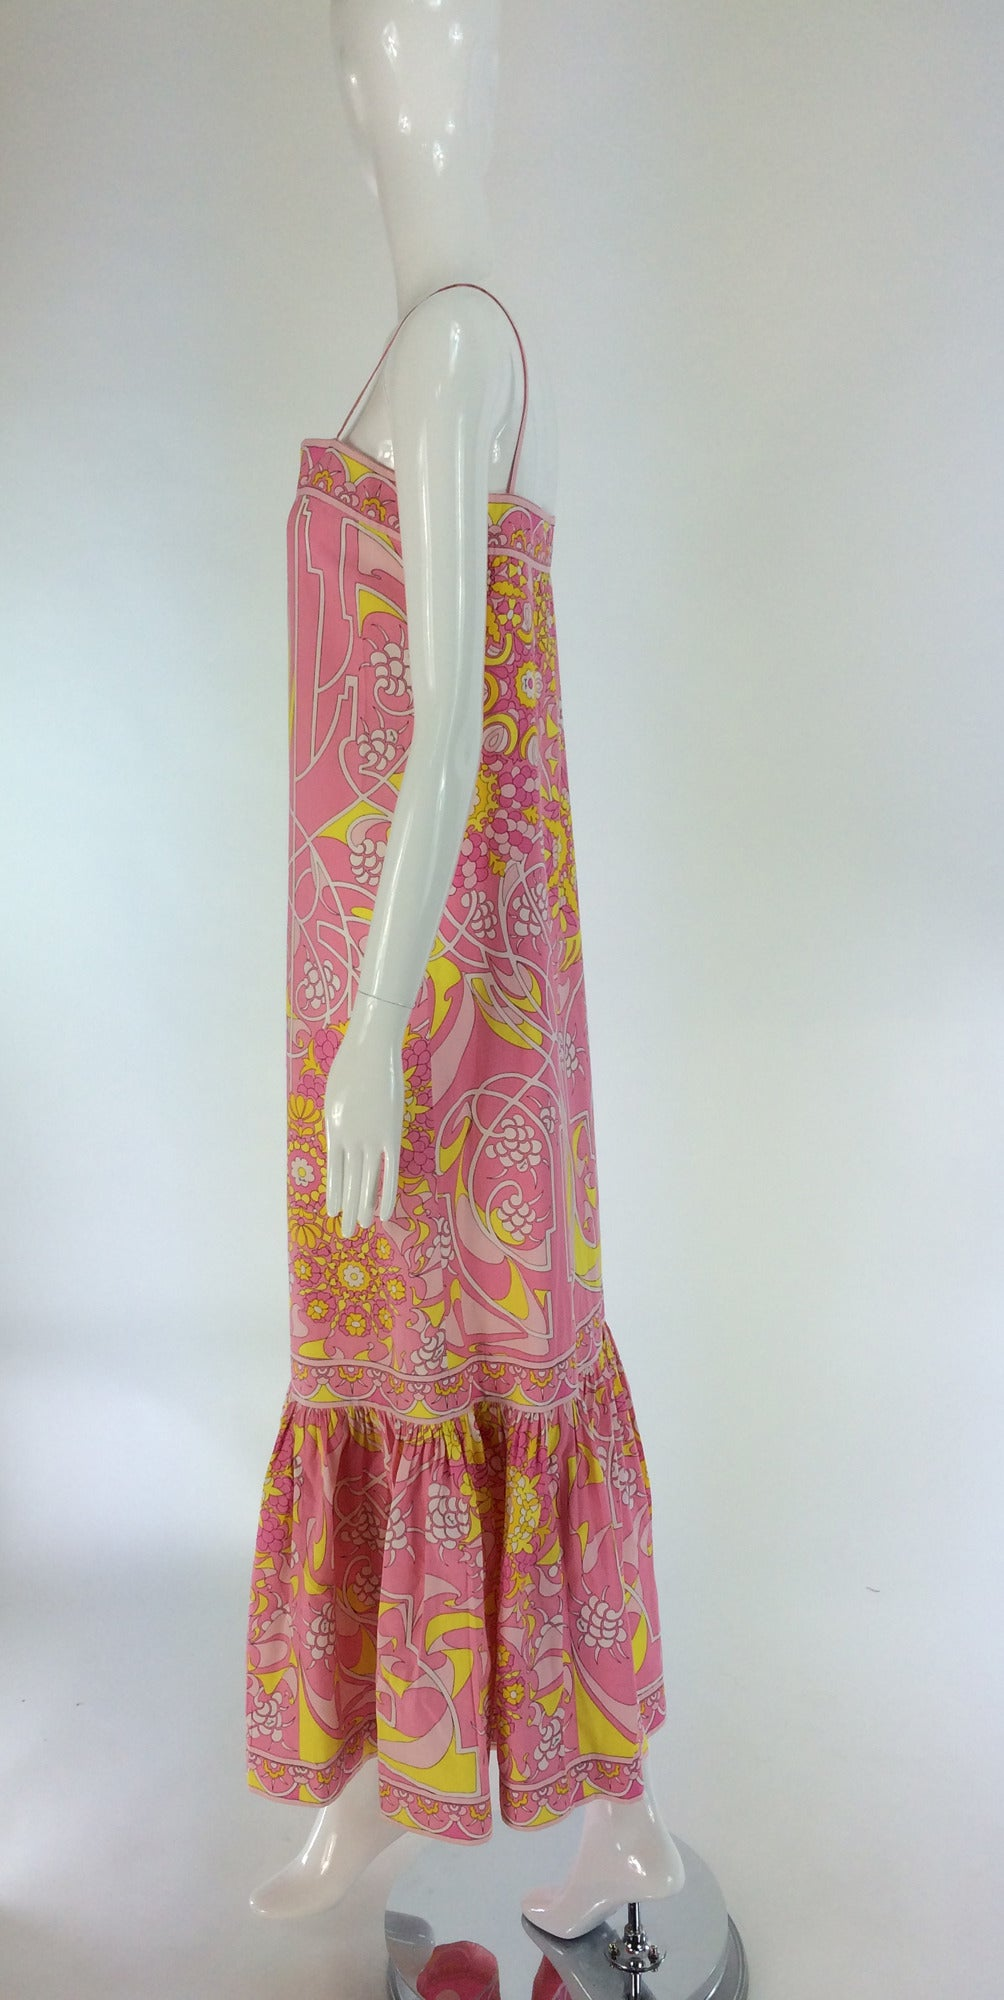 Emilio Pucci printed cotton maxi dress out of the ordinary design 1960s For Sale 4